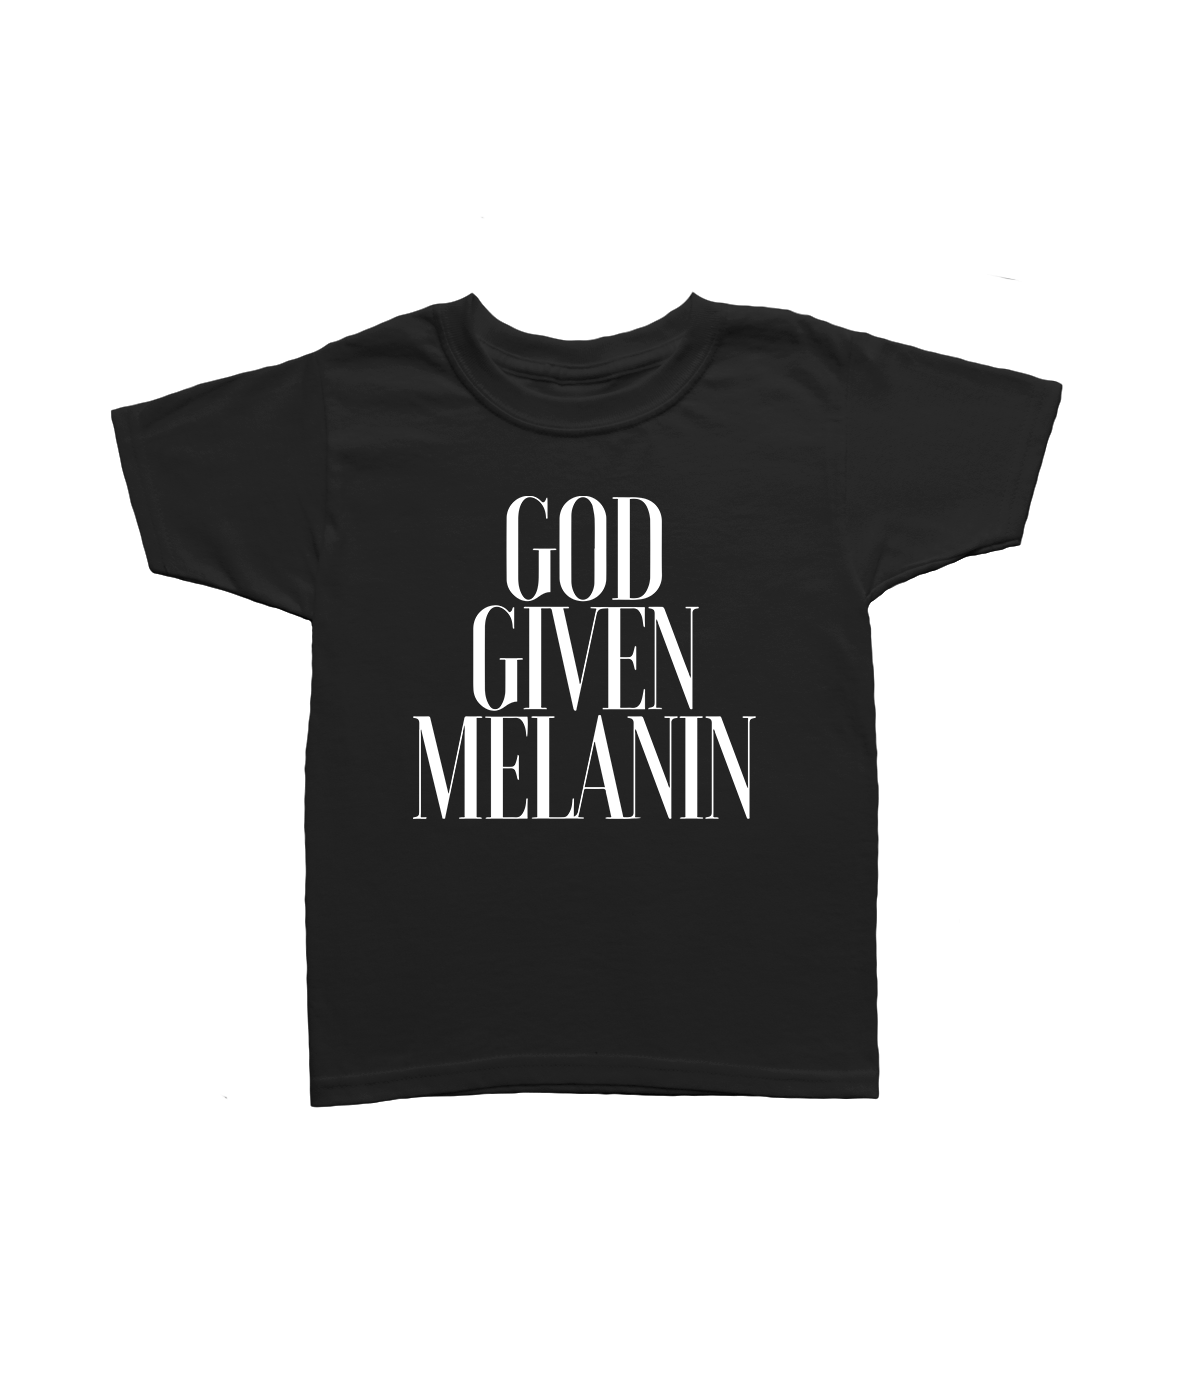 Toddler. Youth. God Given Melanin Short Sleeve T-Shirt